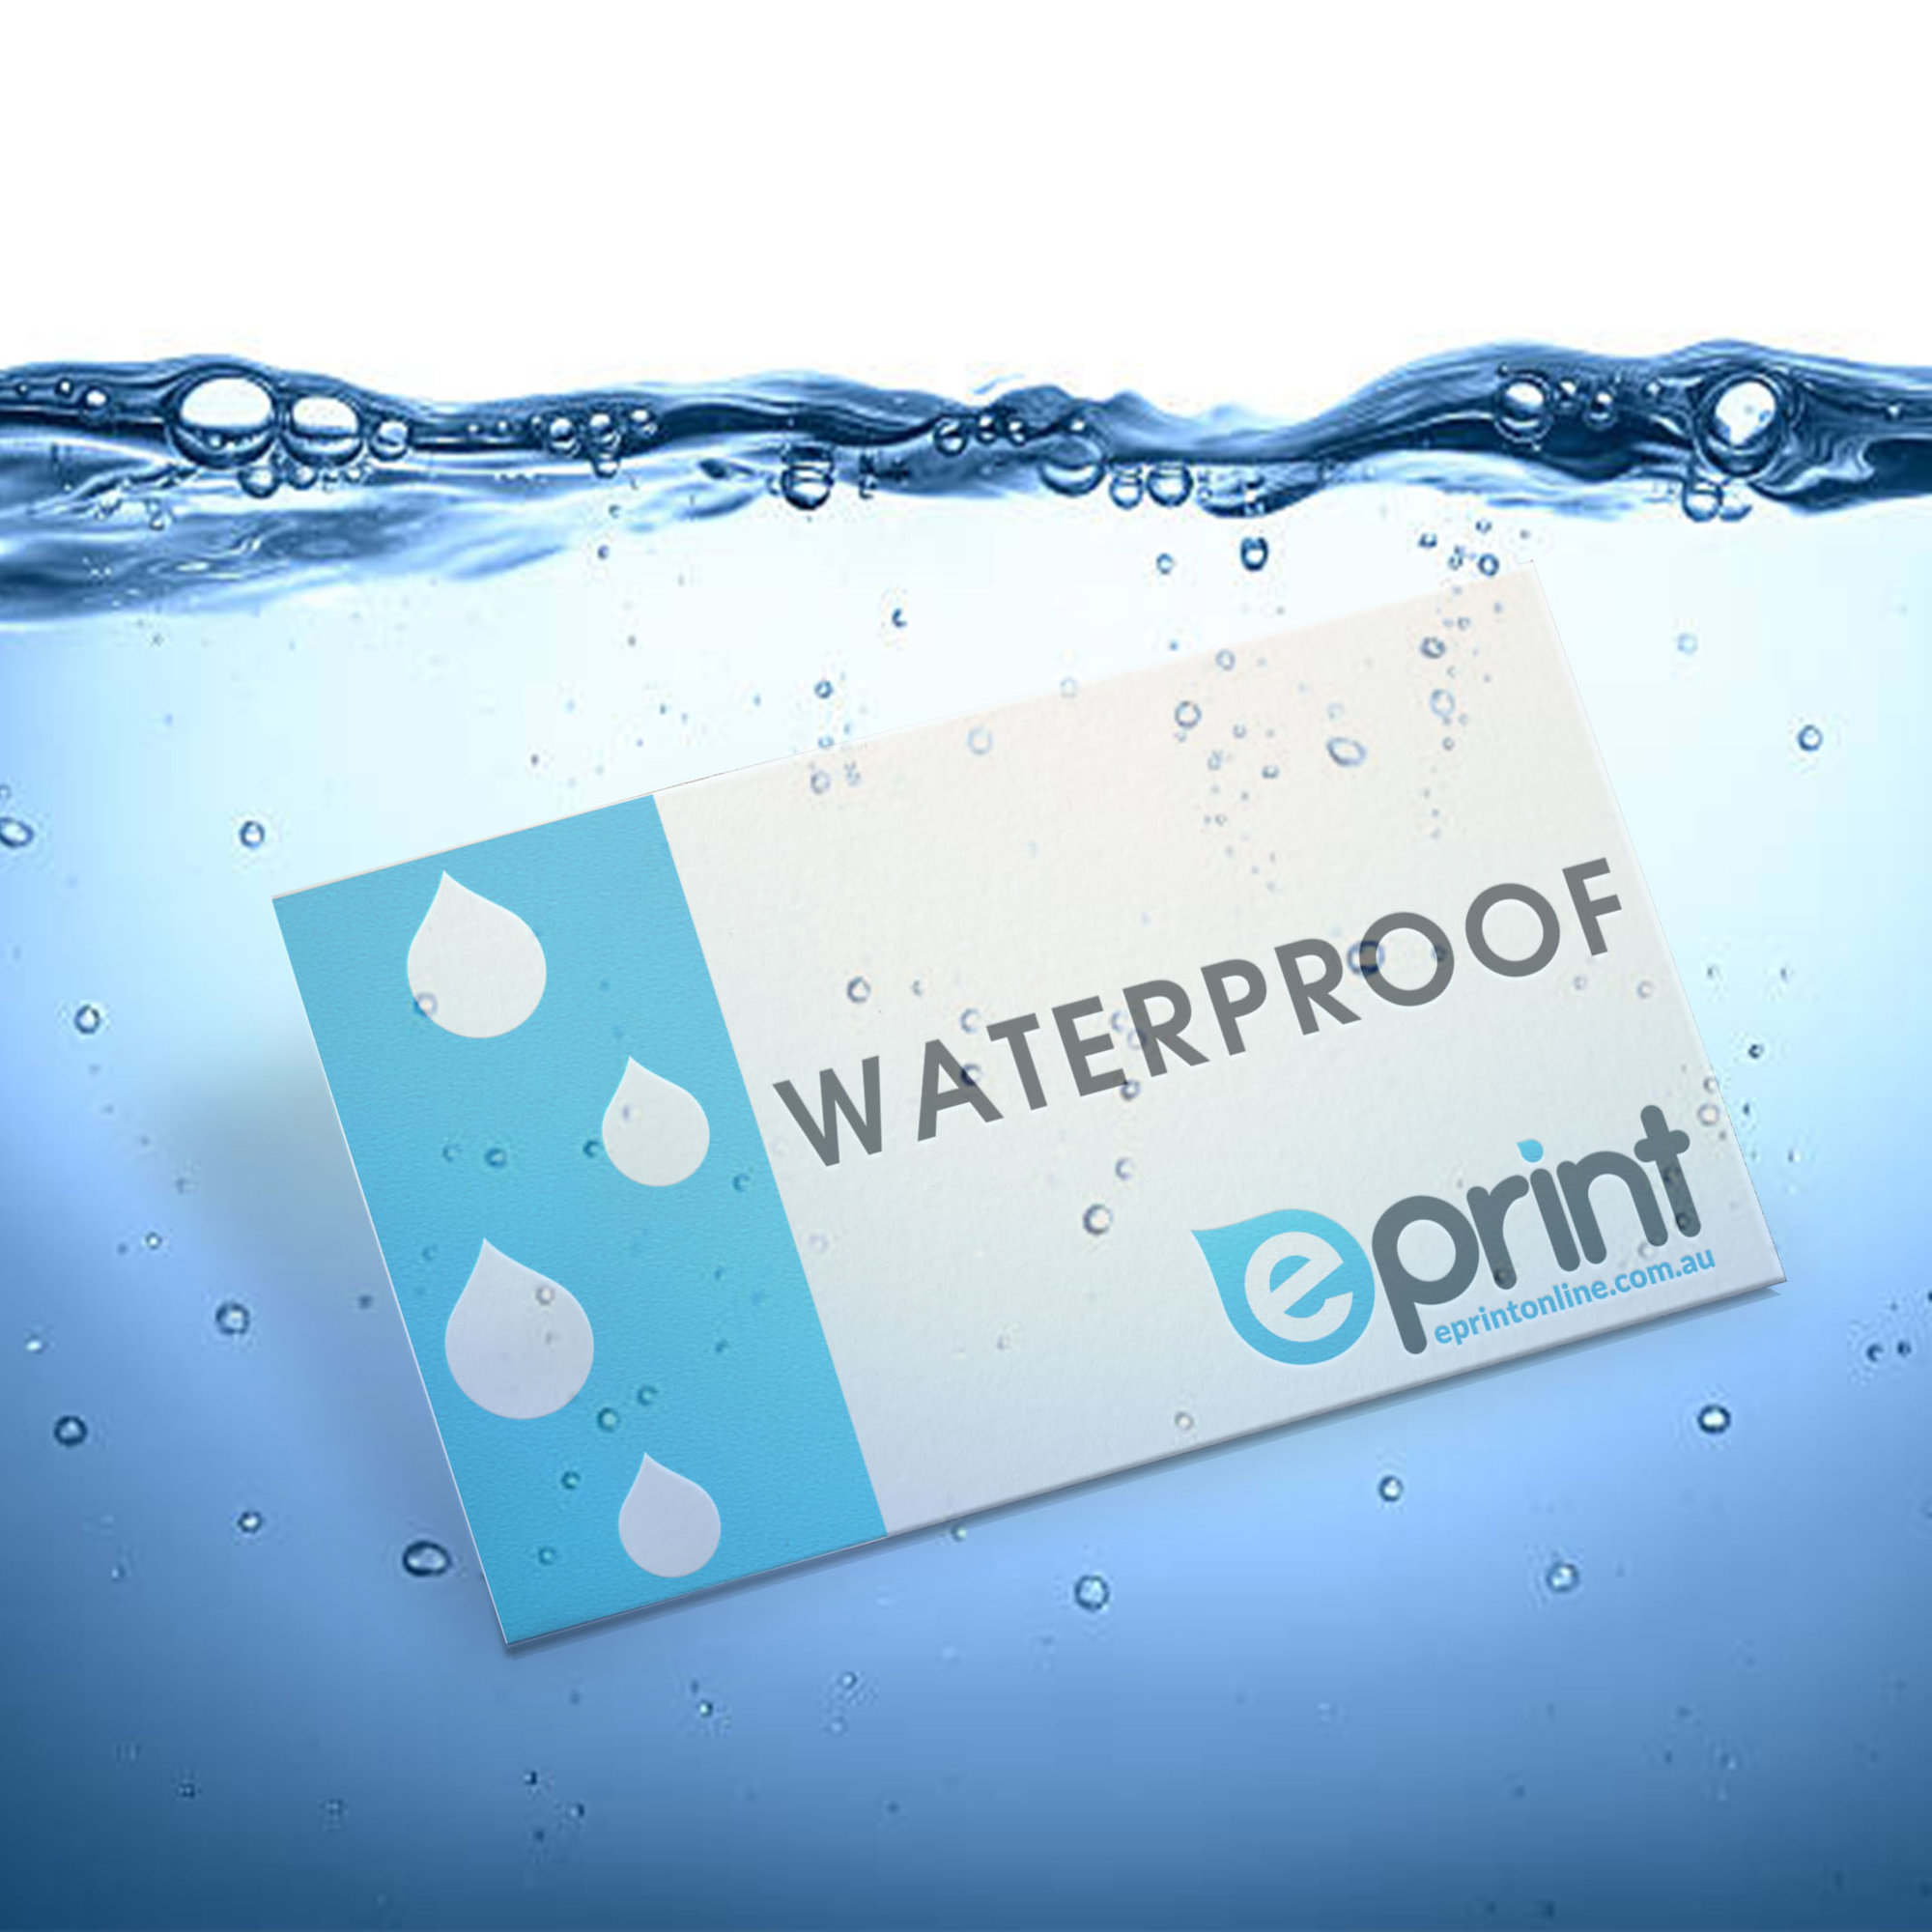 https://shop.eprintonline.com.au/images/products_gallery_images/WaterproofBCard-Working44.jpg